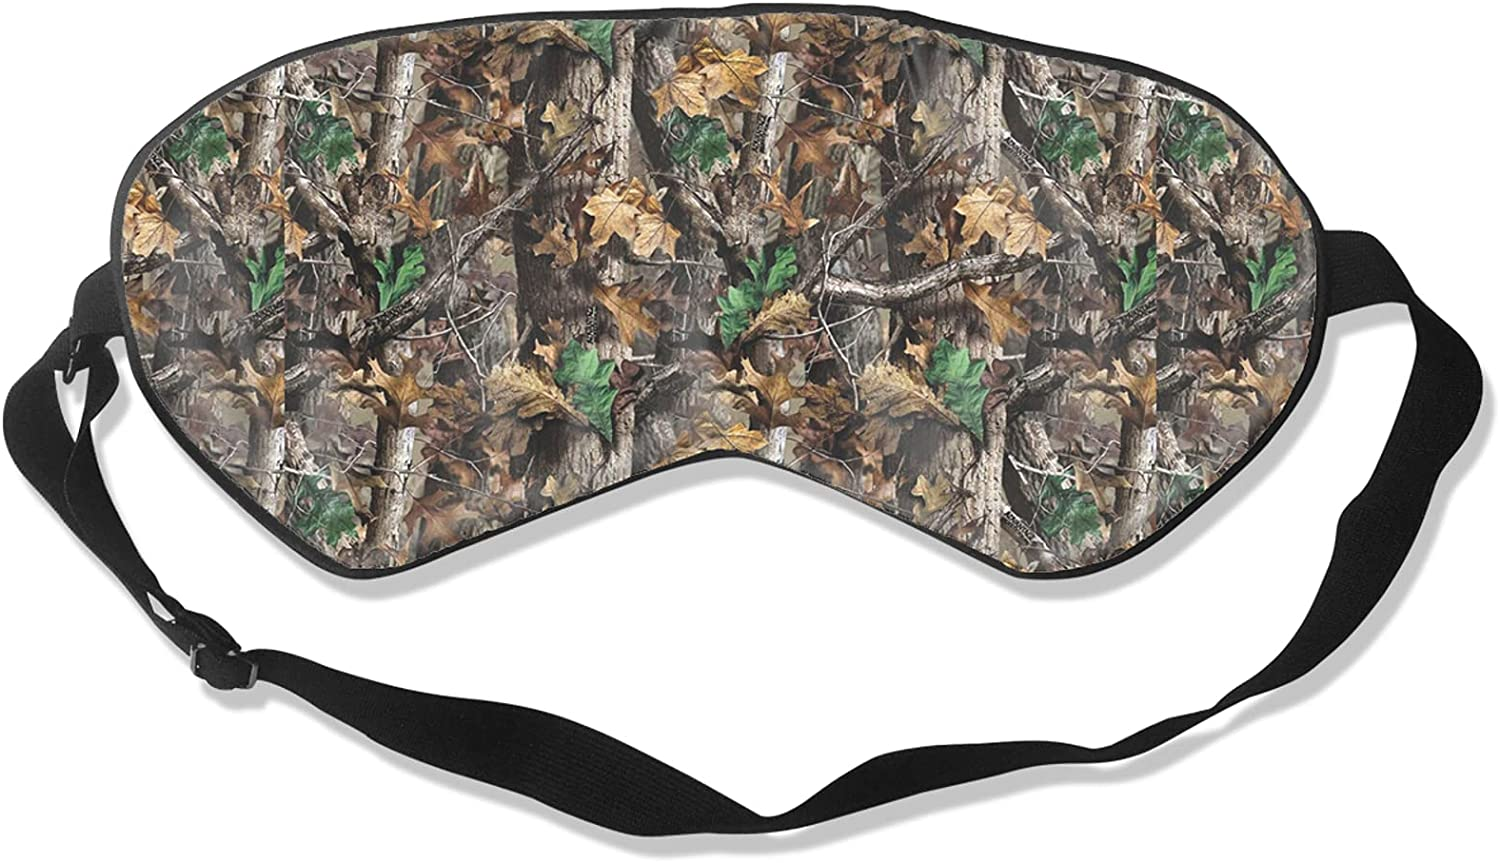 Super sale Wood Camouflage Sleep Eye Breathable Soft Special price for a limited time Blindfold Mask